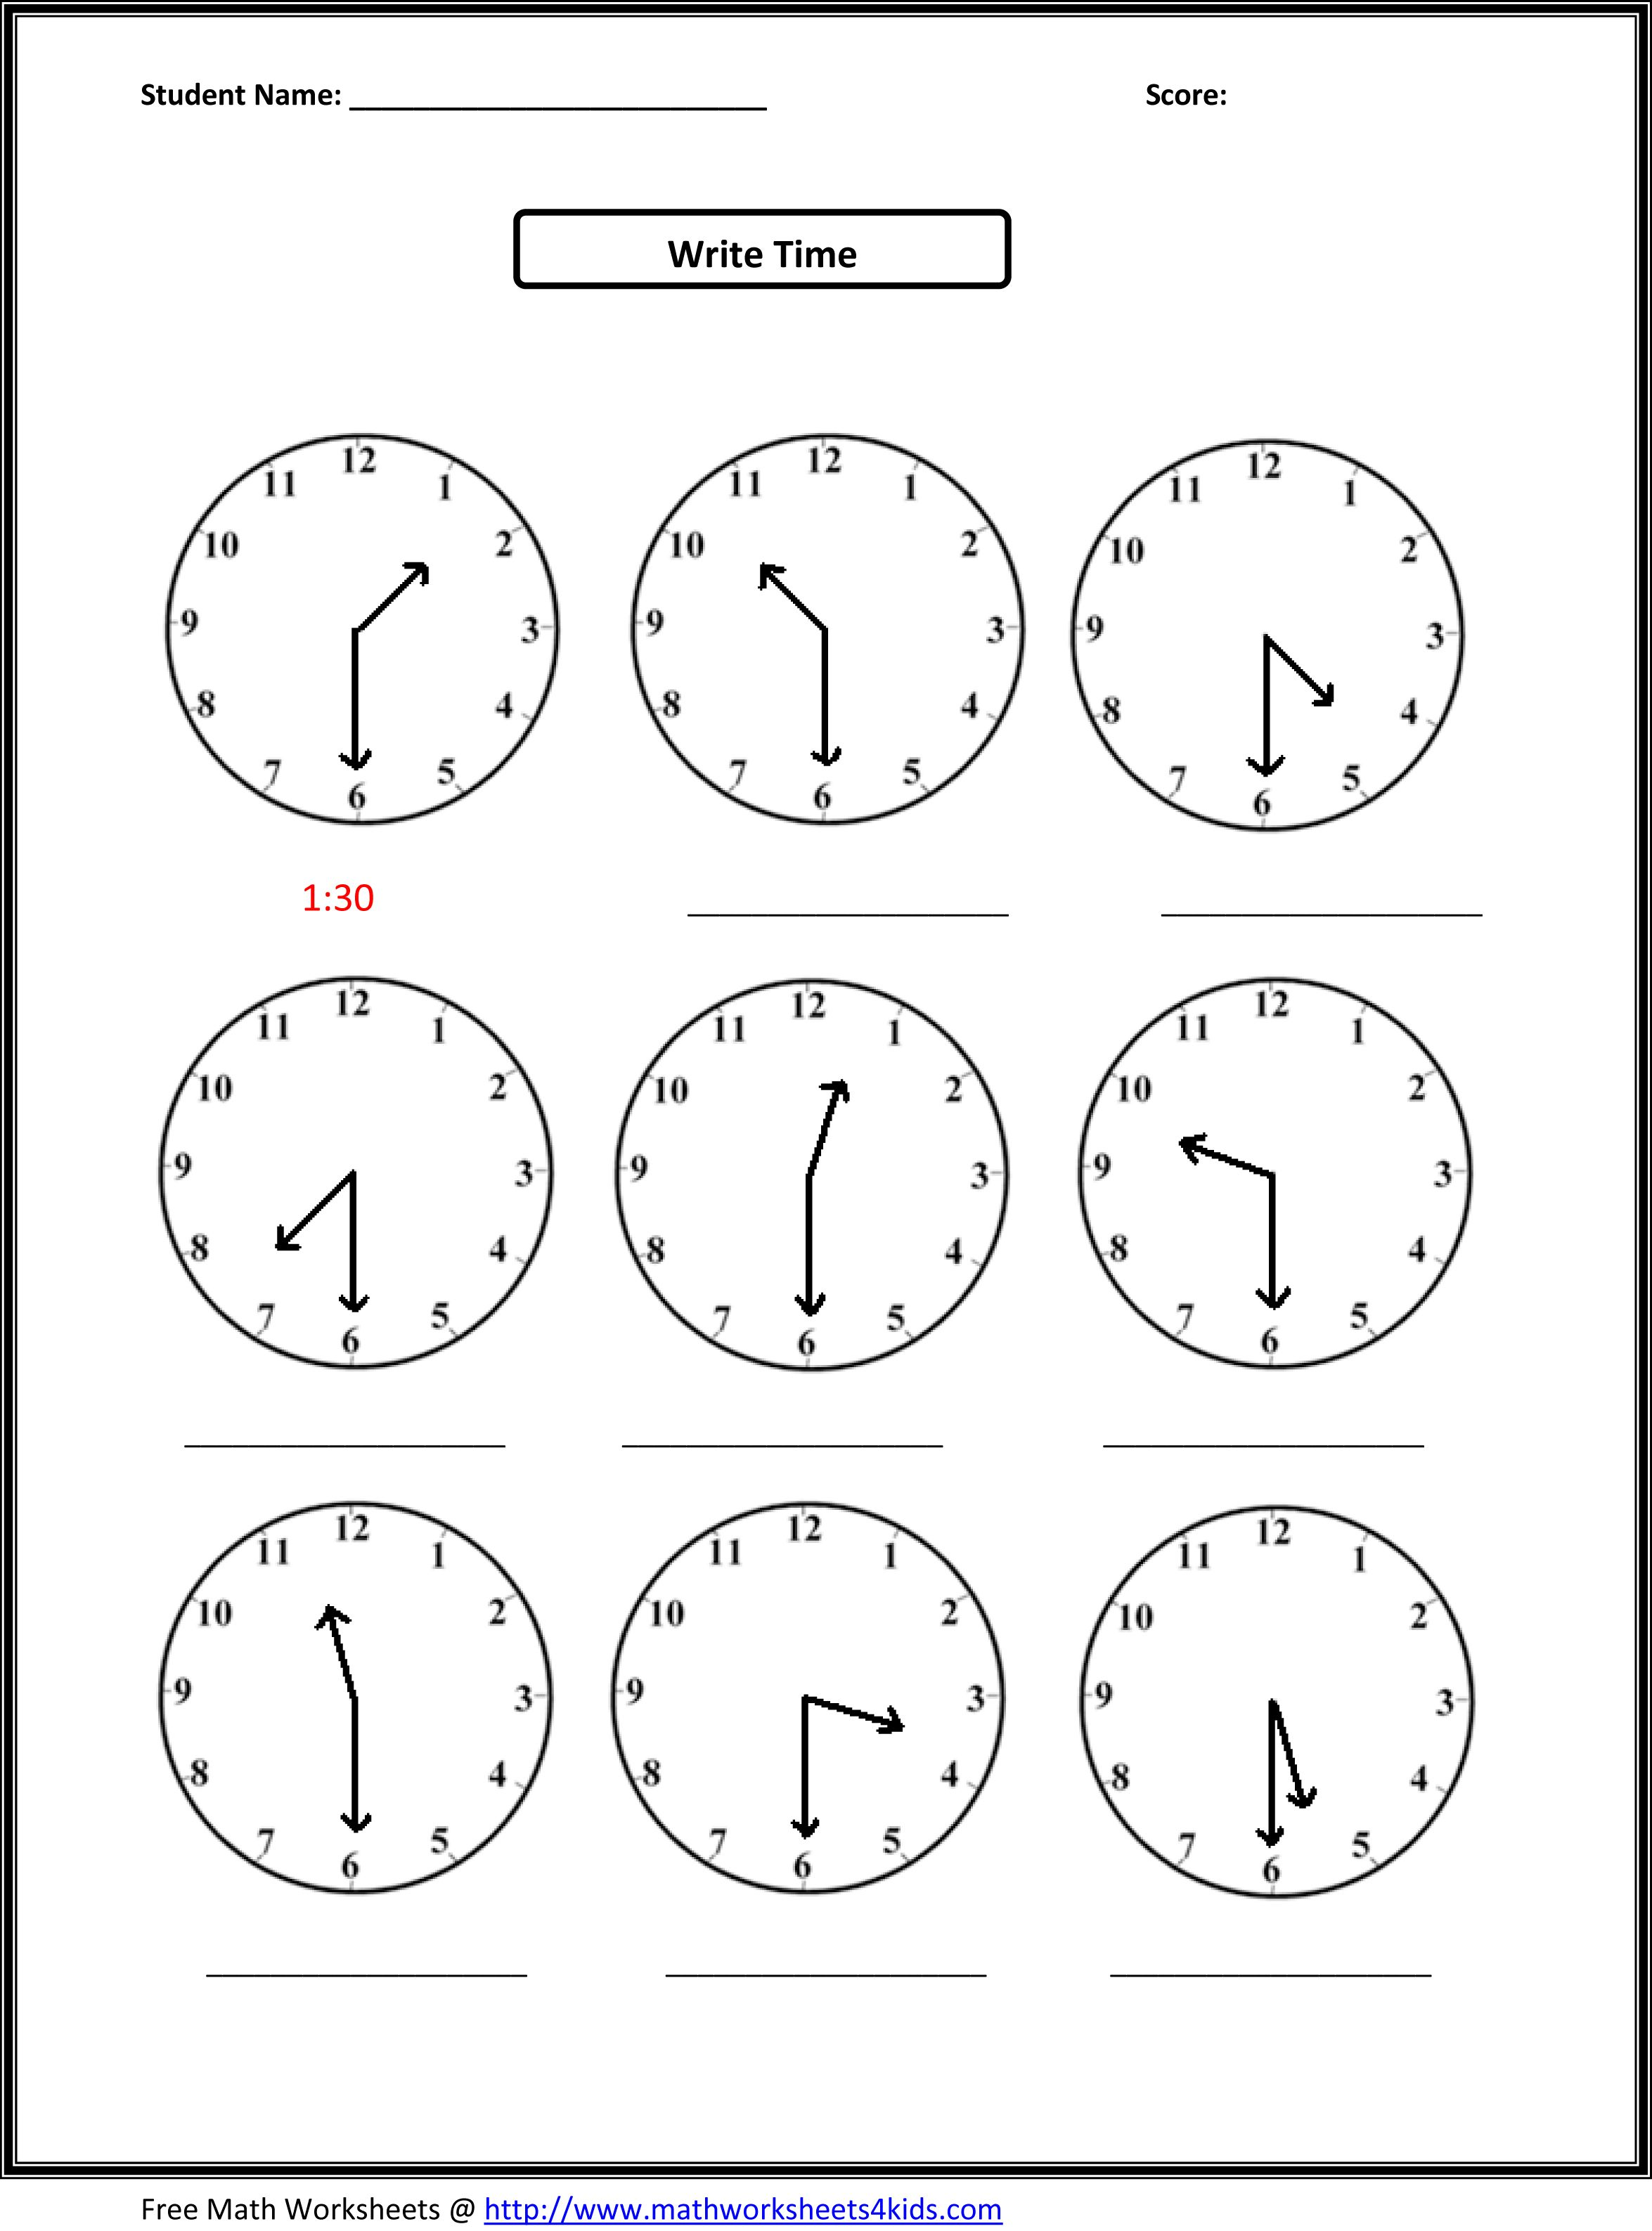 Weirdmailus  Marvelous Worksheet On Time For Grade   Reocurent With Exquisite Free Printable Telling Time Worksheets Nd Grade  Reocurent With Breathtaking Forensic Worksheets Also United States Of America Name The State Worksheet In Addition Making A Line Plot Worksheet And Rounding Decimals Worksheets Th Grade As Well As Calorie Worksheet Additionally Writing Cursive Worksheets From Reocurentcom With Weirdmailus  Exquisite Worksheet On Time For Grade   Reocurent With Breathtaking Free Printable Telling Time Worksheets Nd Grade  Reocurent And Marvelous Forensic Worksheets Also United States Of America Name The State Worksheet In Addition Making A Line Plot Worksheet From Reocurentcom